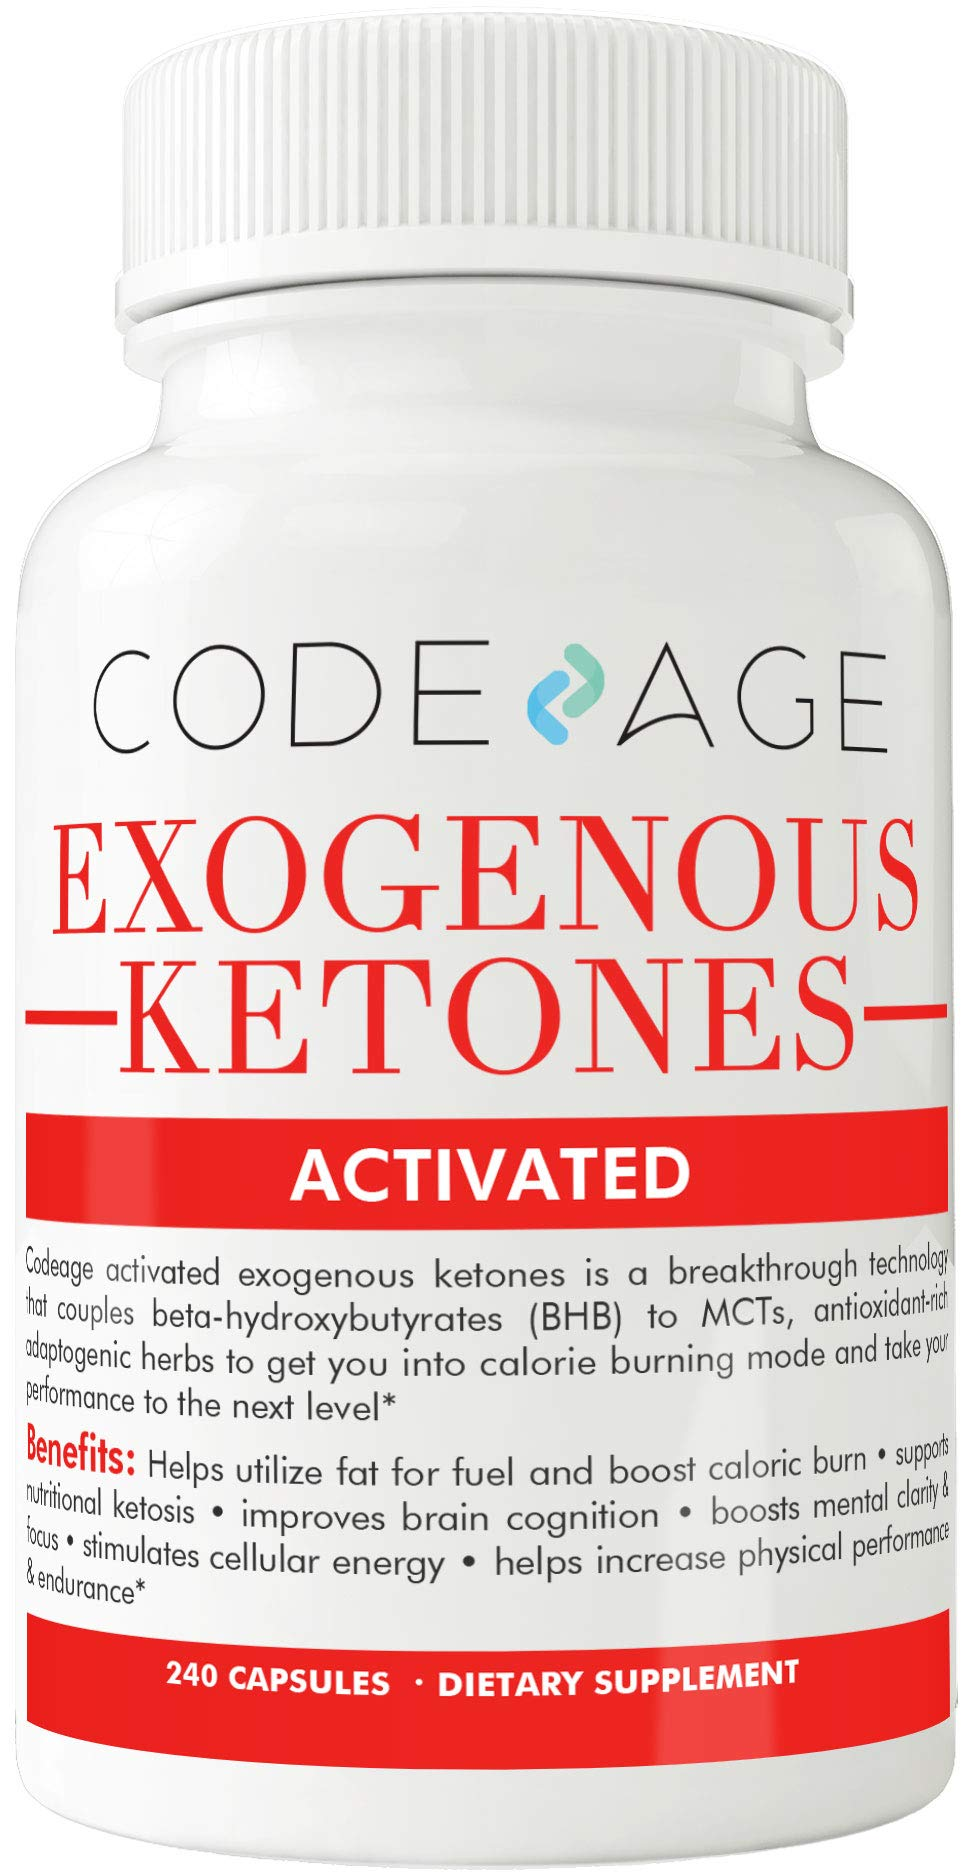 Codeage BHB Exogenous Ketones Supplement Pills, with BHB Salts as Exogenous Ketones, Electrolytes and Caffeine, 240 Capsules by Code Age